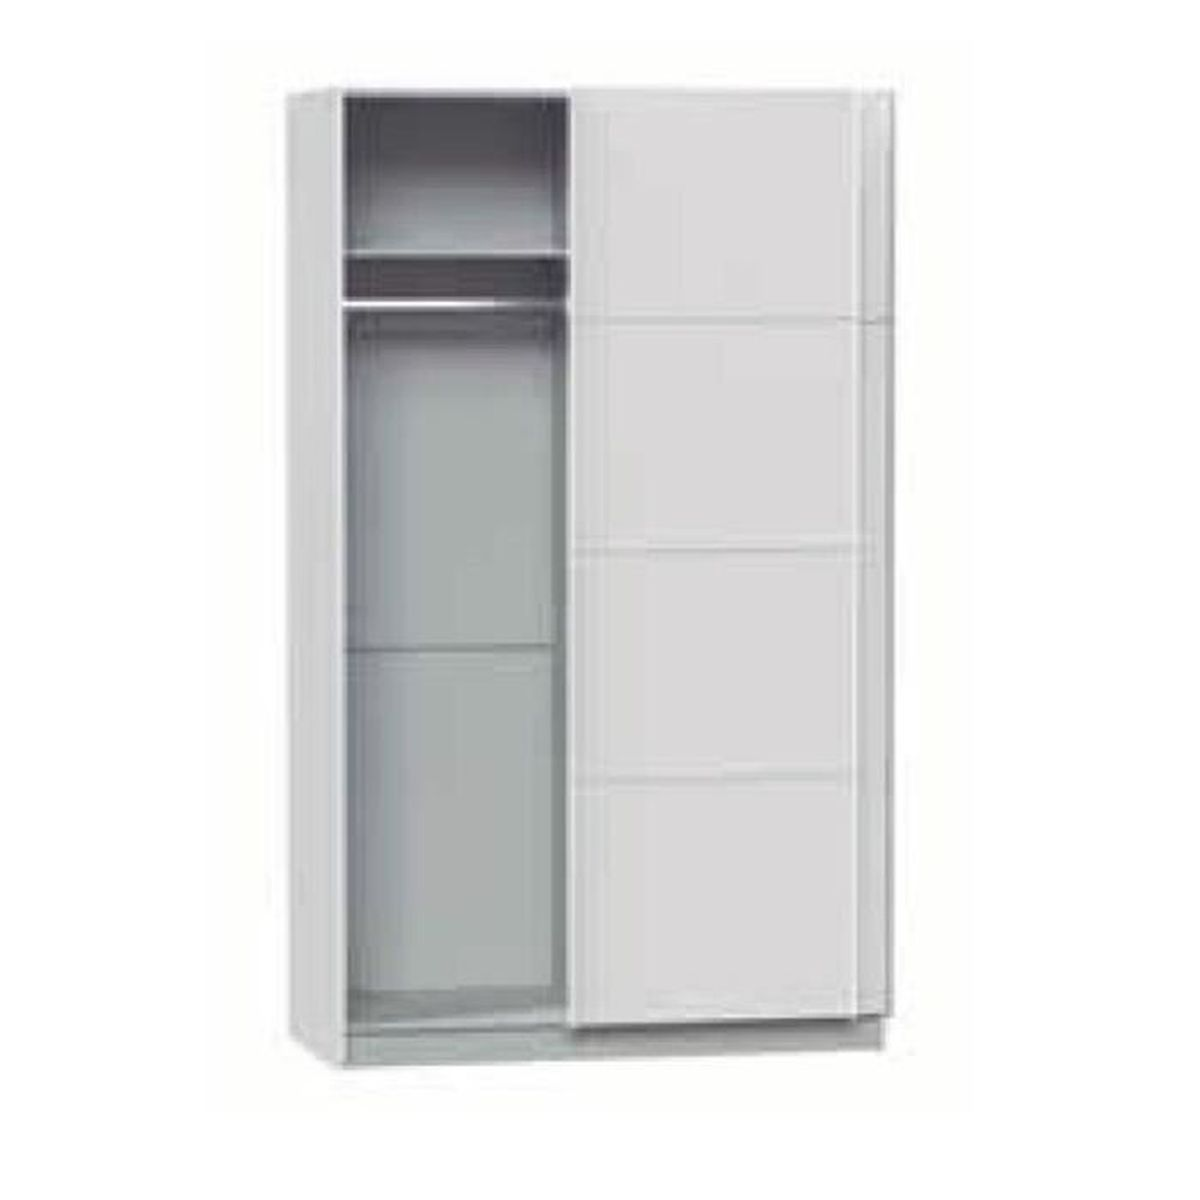 armoire avec 2 portes coulissantes coloris blanc dim 120 x 60 x 220 cm achat vente. Black Bedroom Furniture Sets. Home Design Ideas